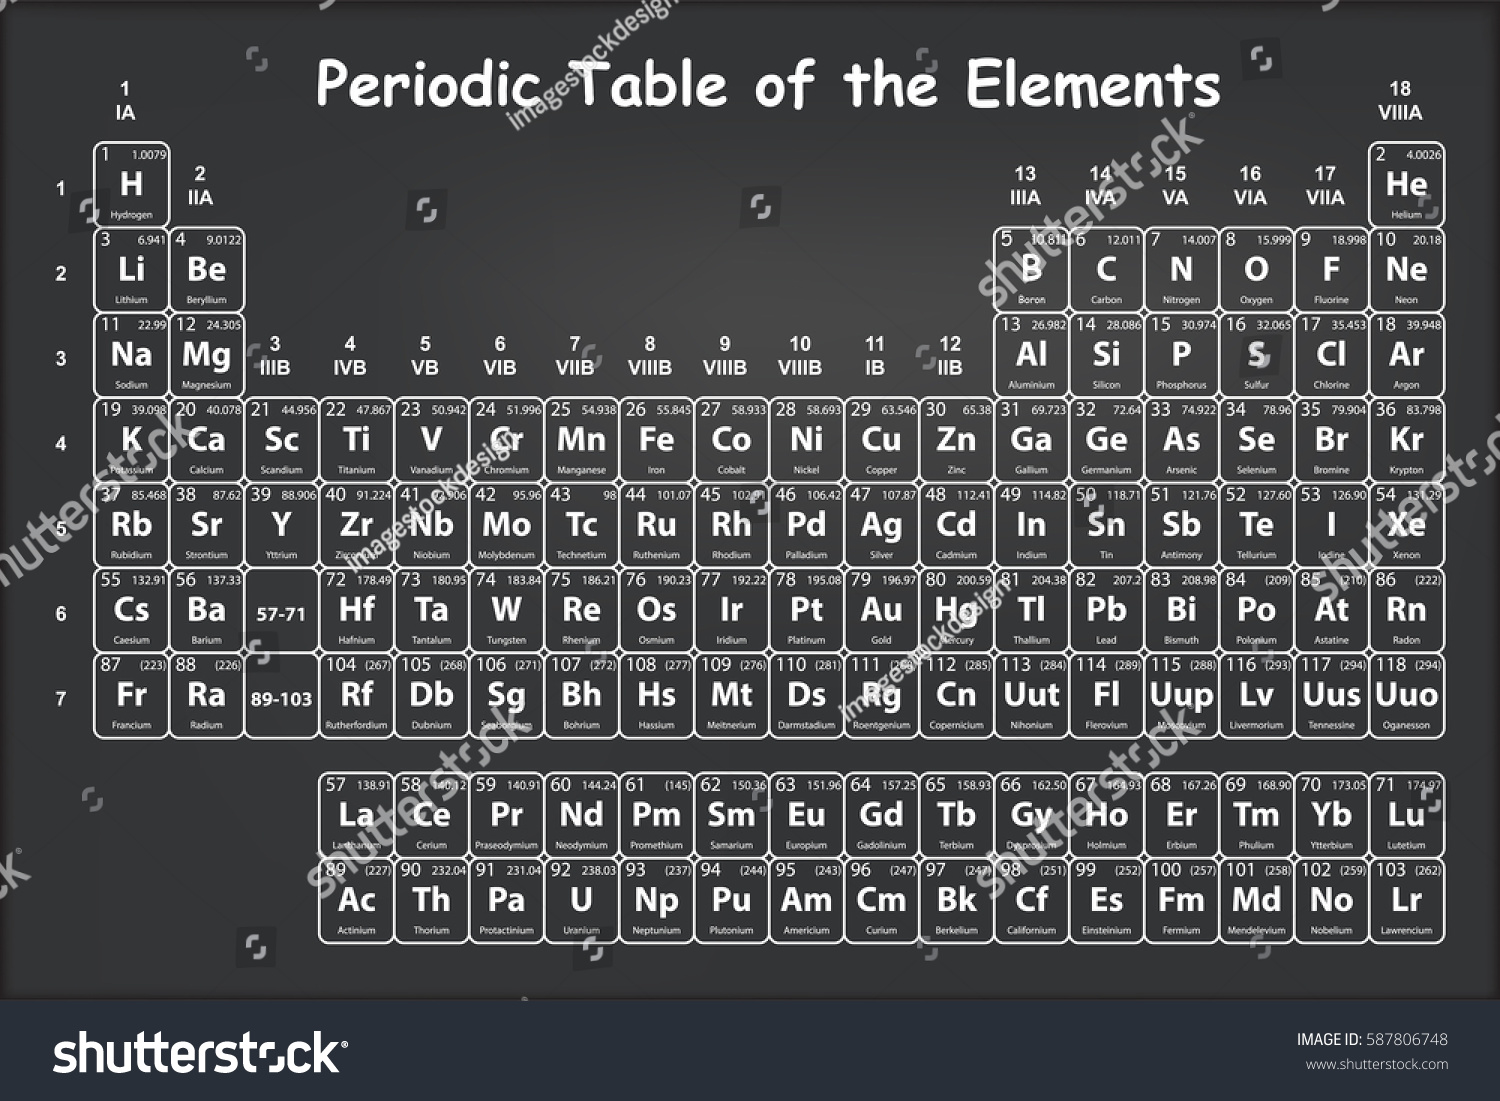 Periodic table elements atomic number symbol stock vector periodic table of the elements with atomic number symbol and weight on black chalkboard vector gamestrikefo Choice Image